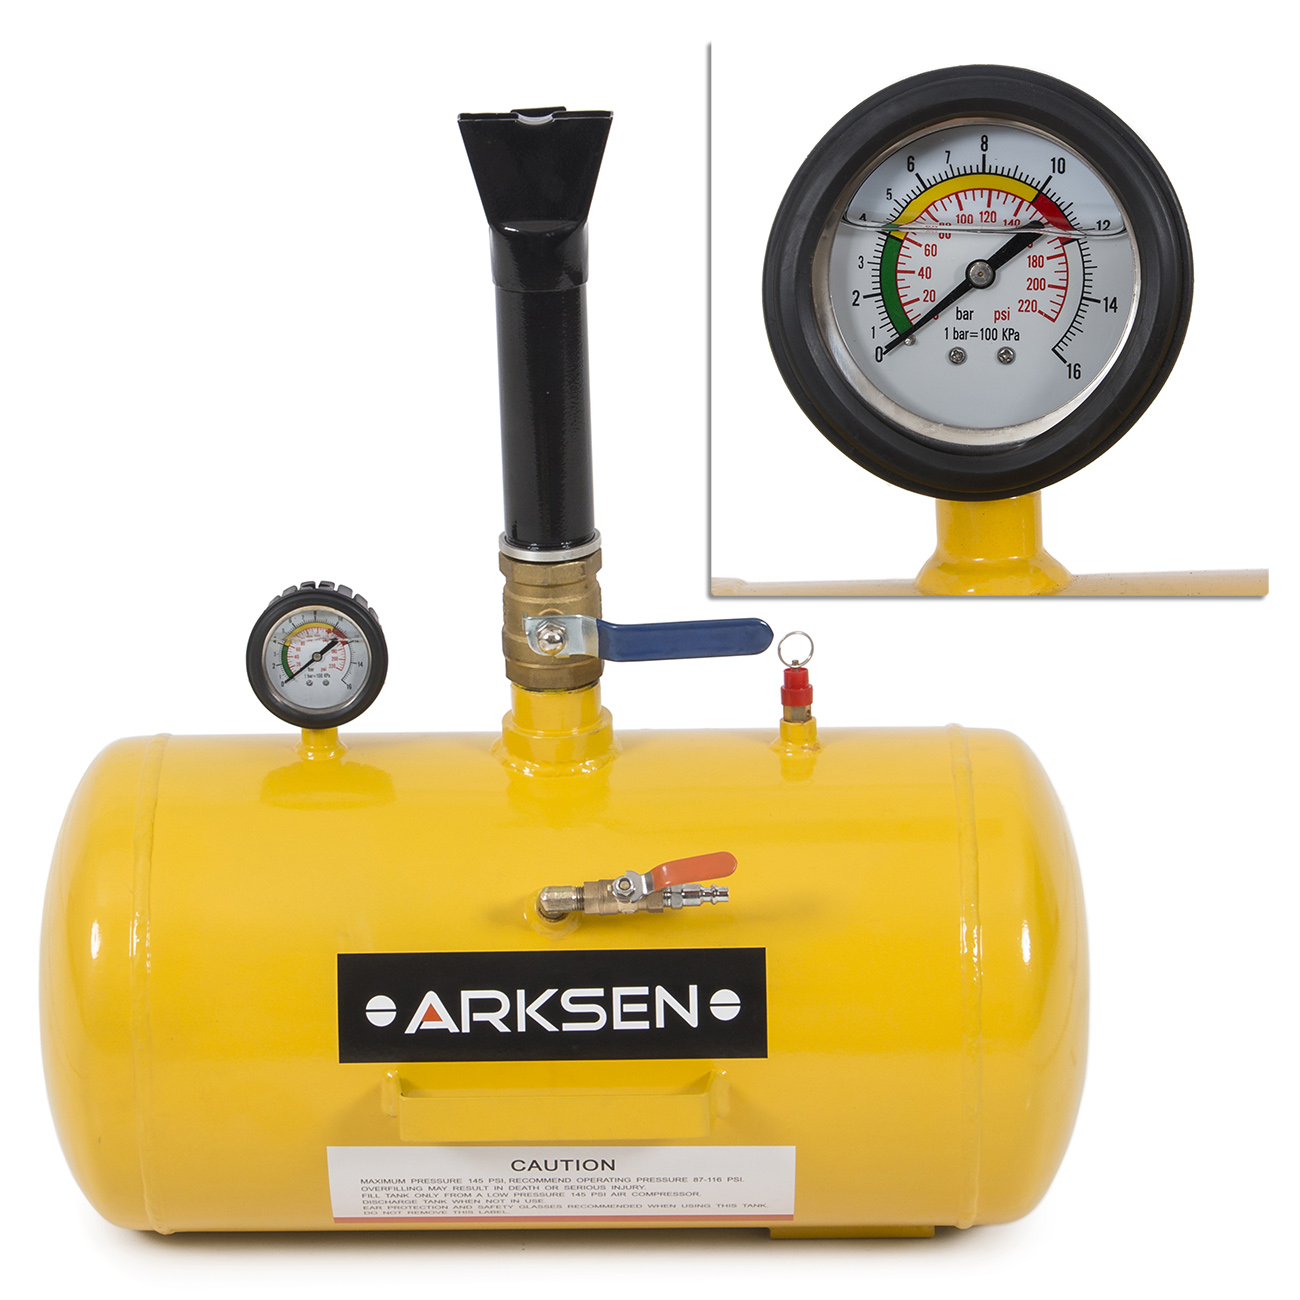 Arksen 10GAL Bead Seater Inflator Blaster Tire, Yellow